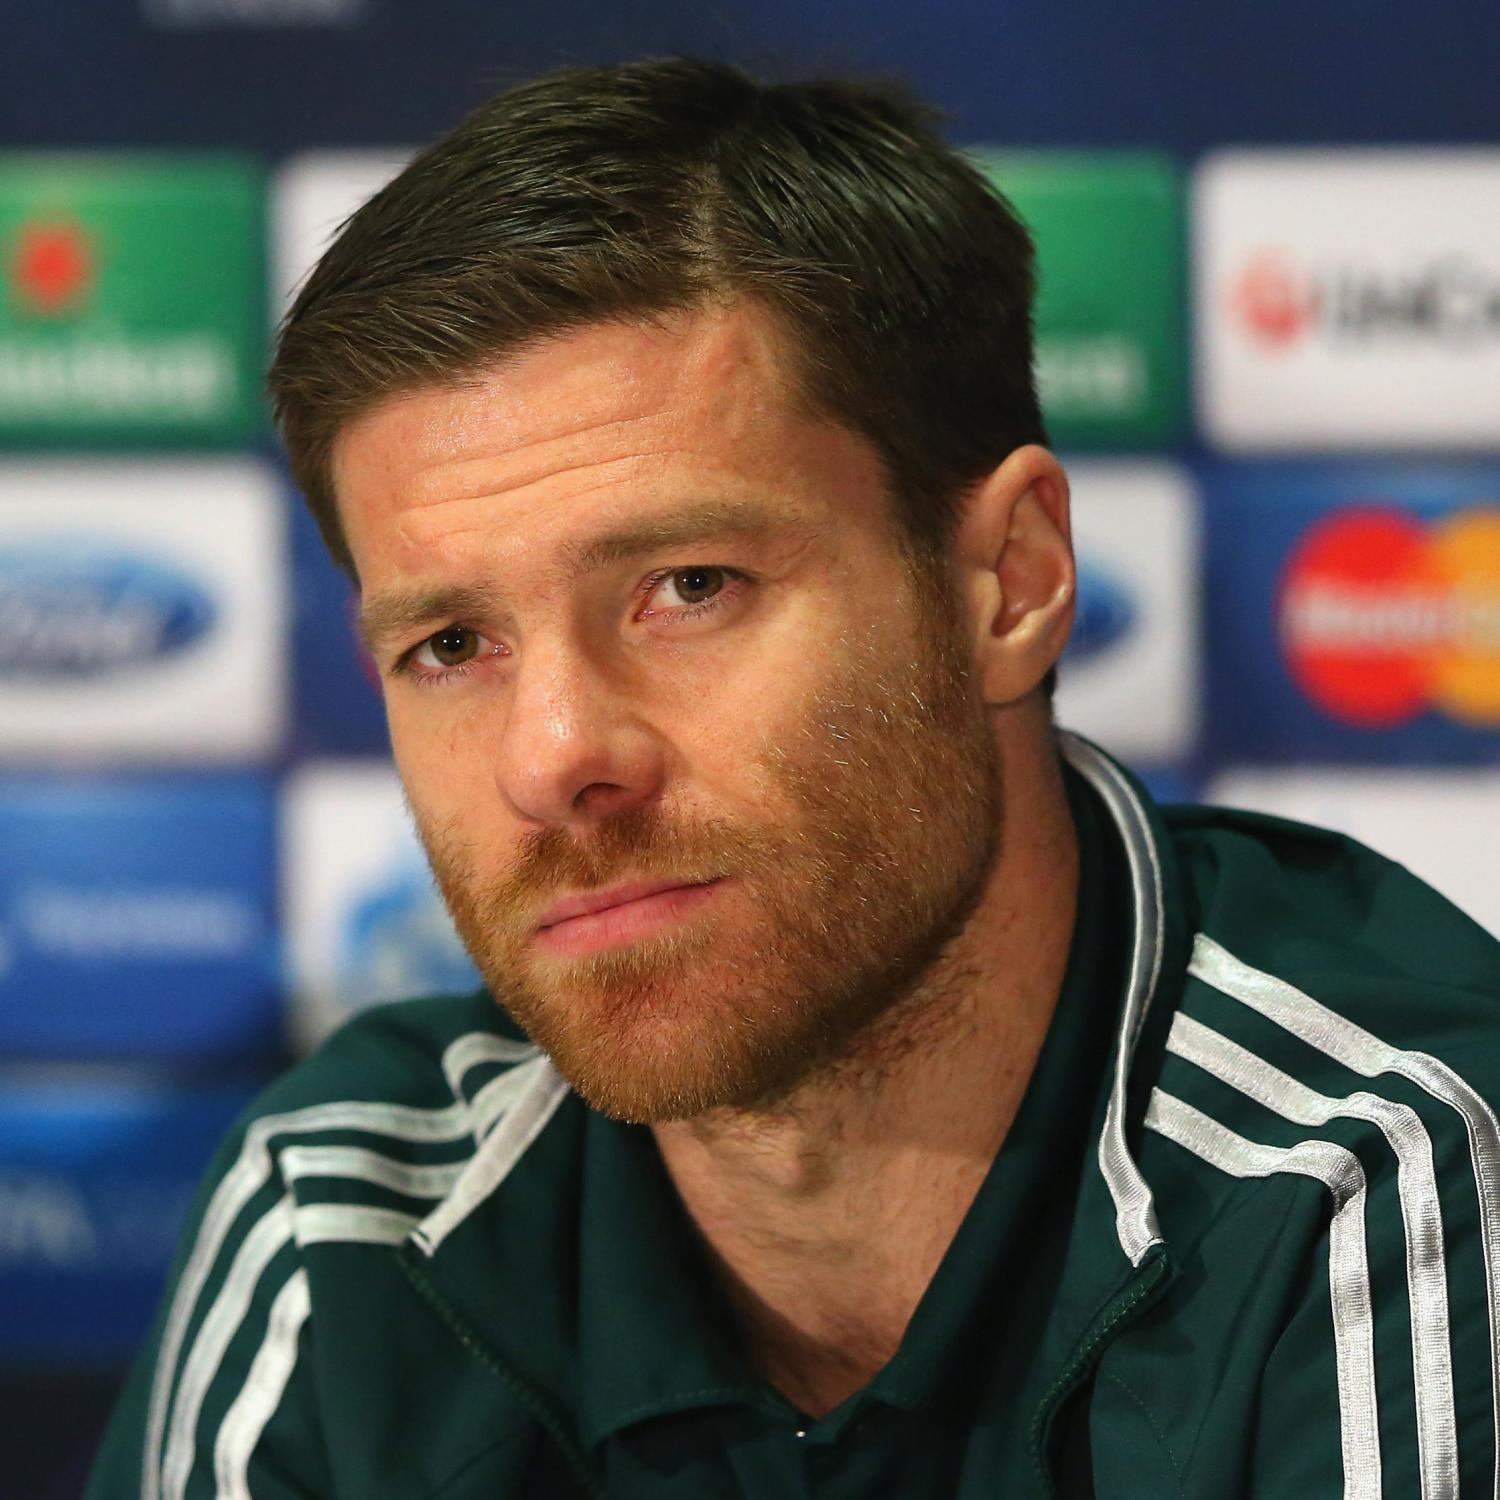 Xabi Alonso Spain Midfielder Player Profile & Pictures